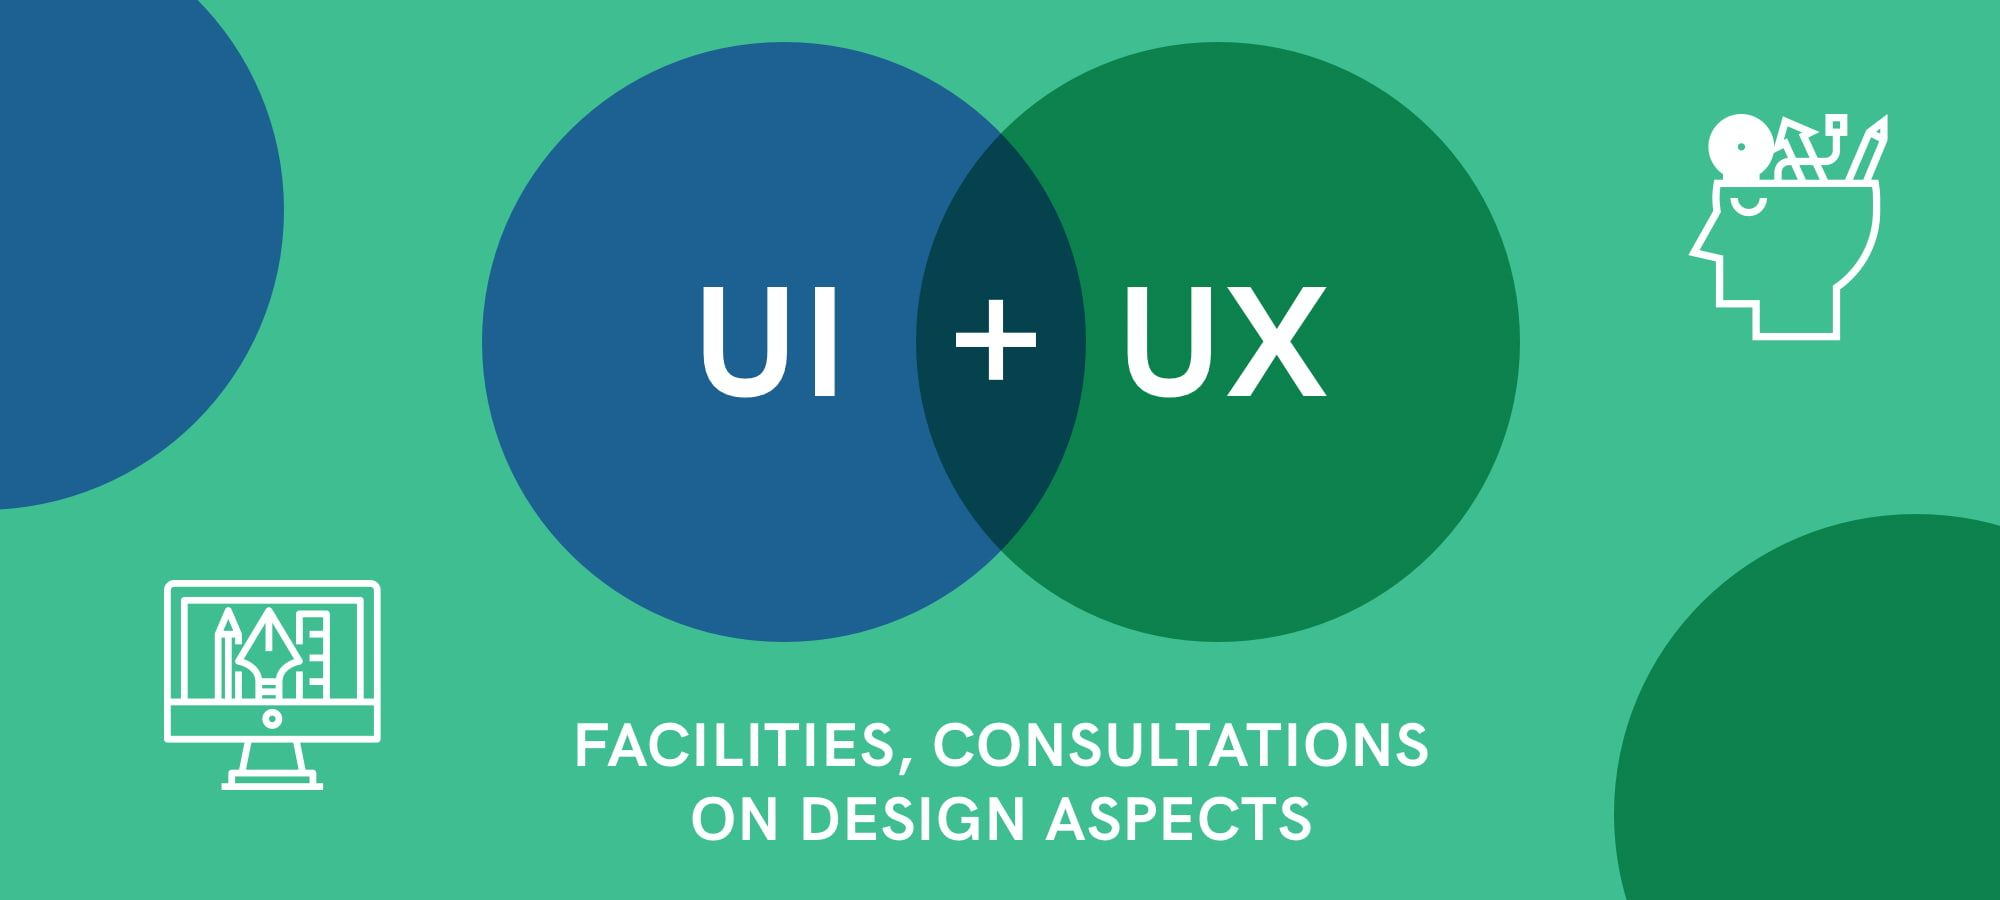 ui-ux-2muchcoffee-Outsourcing-Company